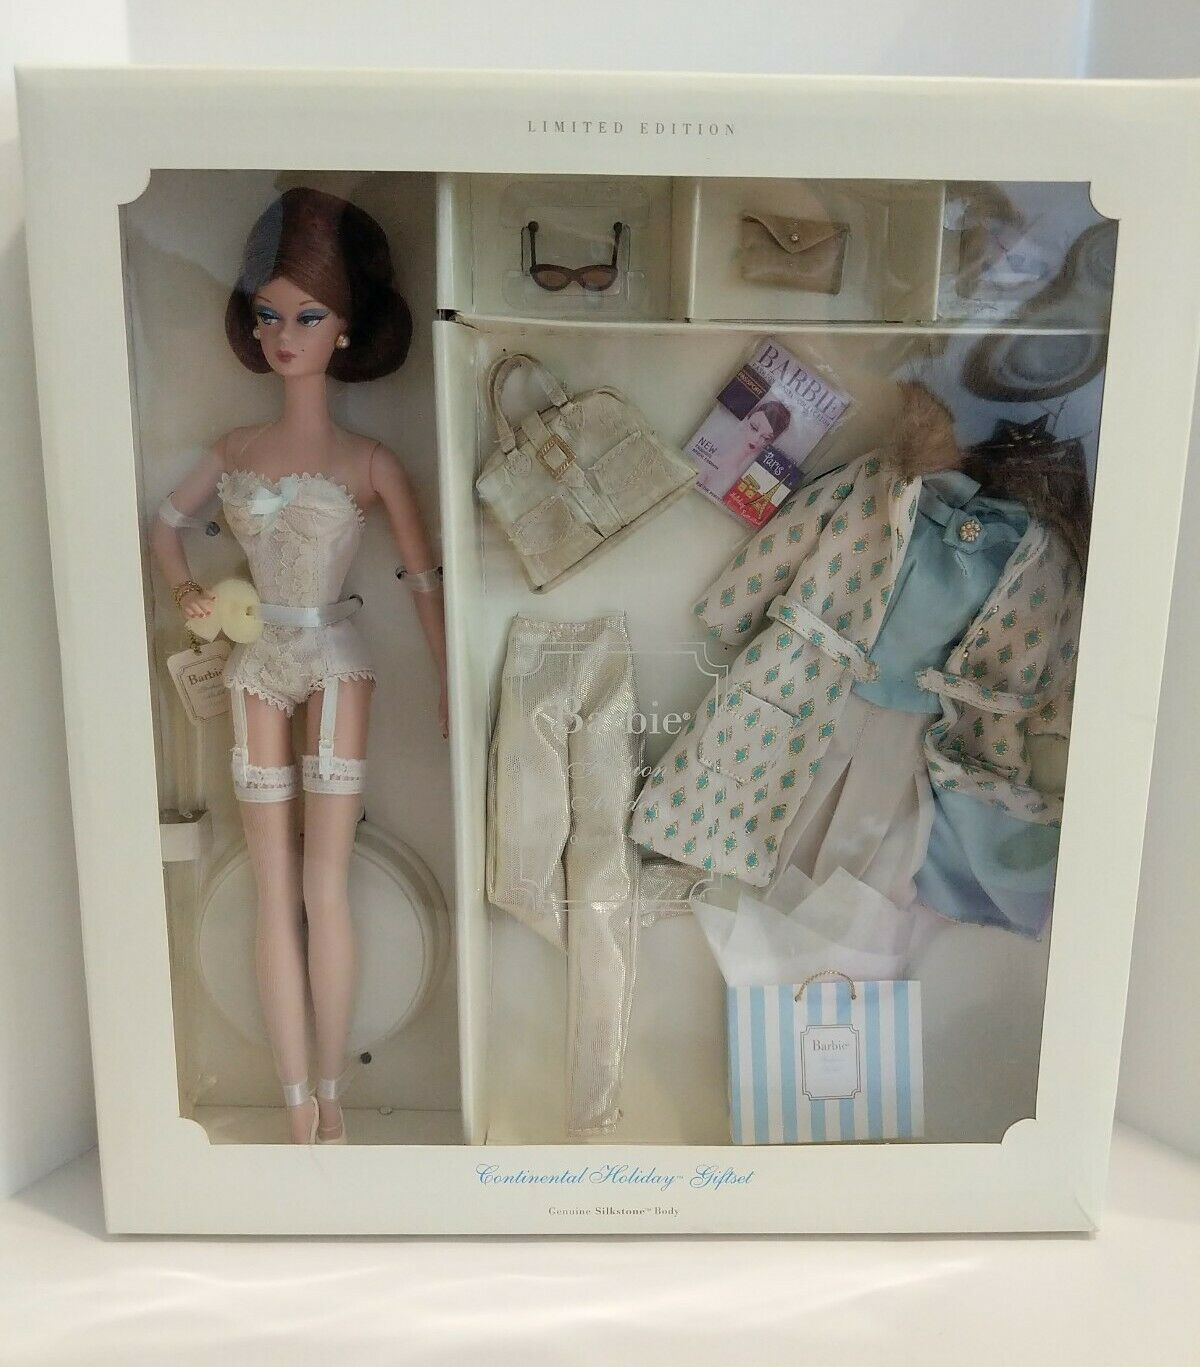 MIB 2001 Silkstone Barbie Continental Holiday Gift Set #55497 - $222.74